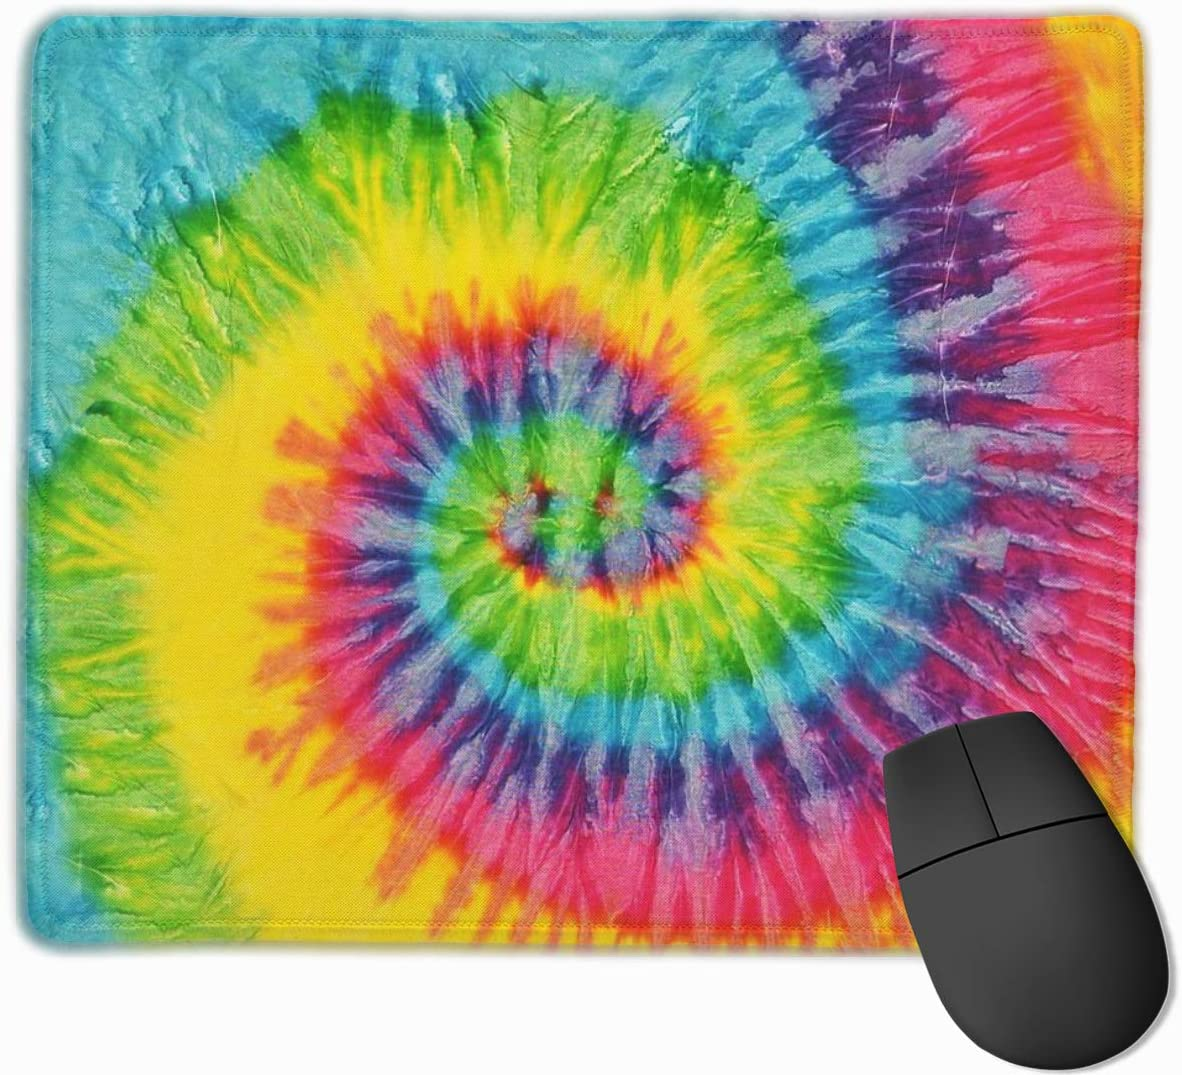 Mouse Pad Saturn Mousepad Non-Slip Rubber Gaming Mat Rectangle Pads for Computers Laptop Mouse Pad